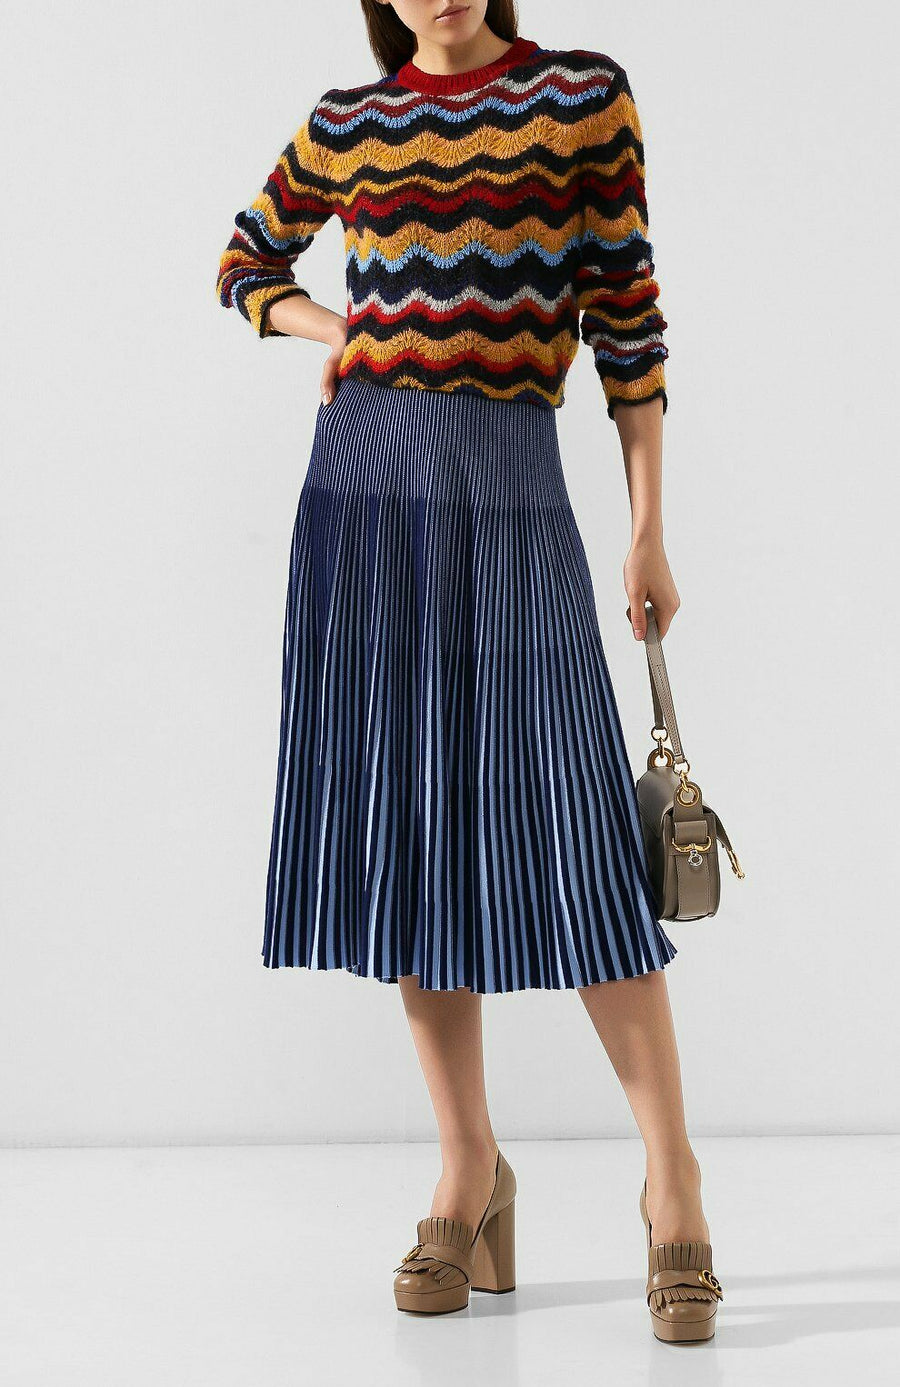 MARNI MULTI COLOR SWIRLS CREW NECK KNIT SWEATER